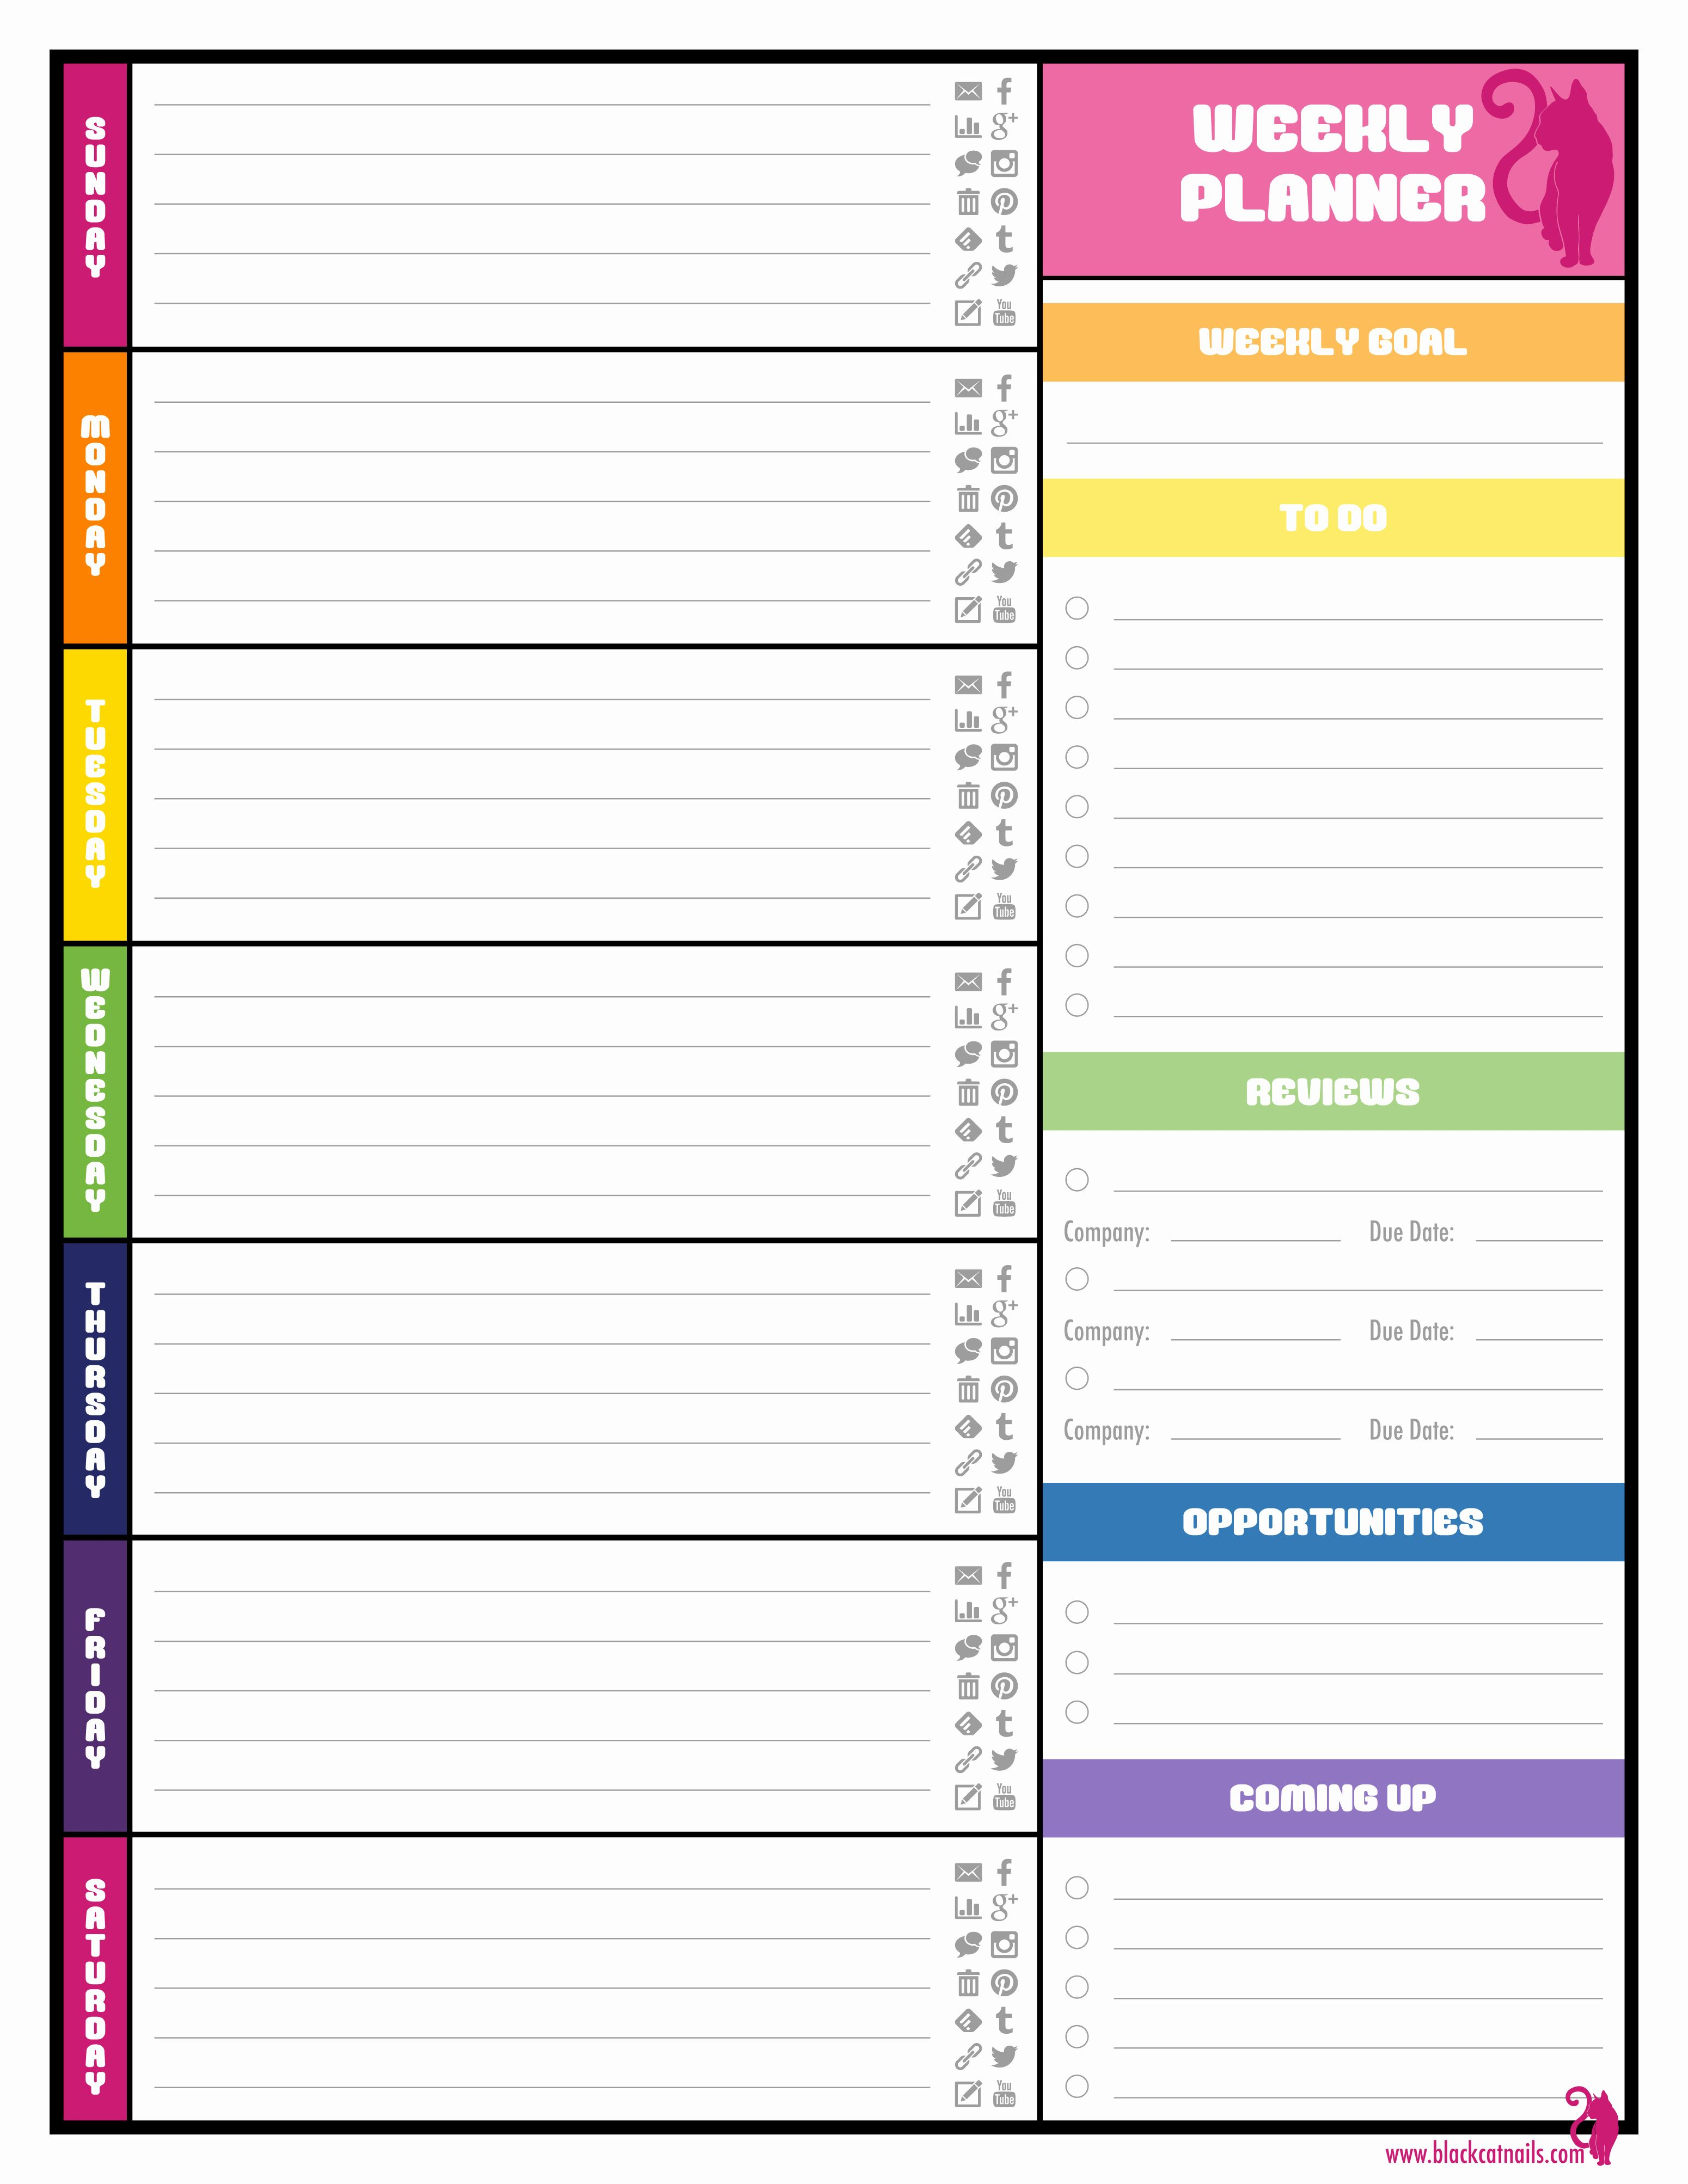 2016 Daily Planner Template Best Of Weekly Planner Template Beepmunk In 2020 Weekly Planner Template Weekly Calendar Template Free Weekly Planner Templates